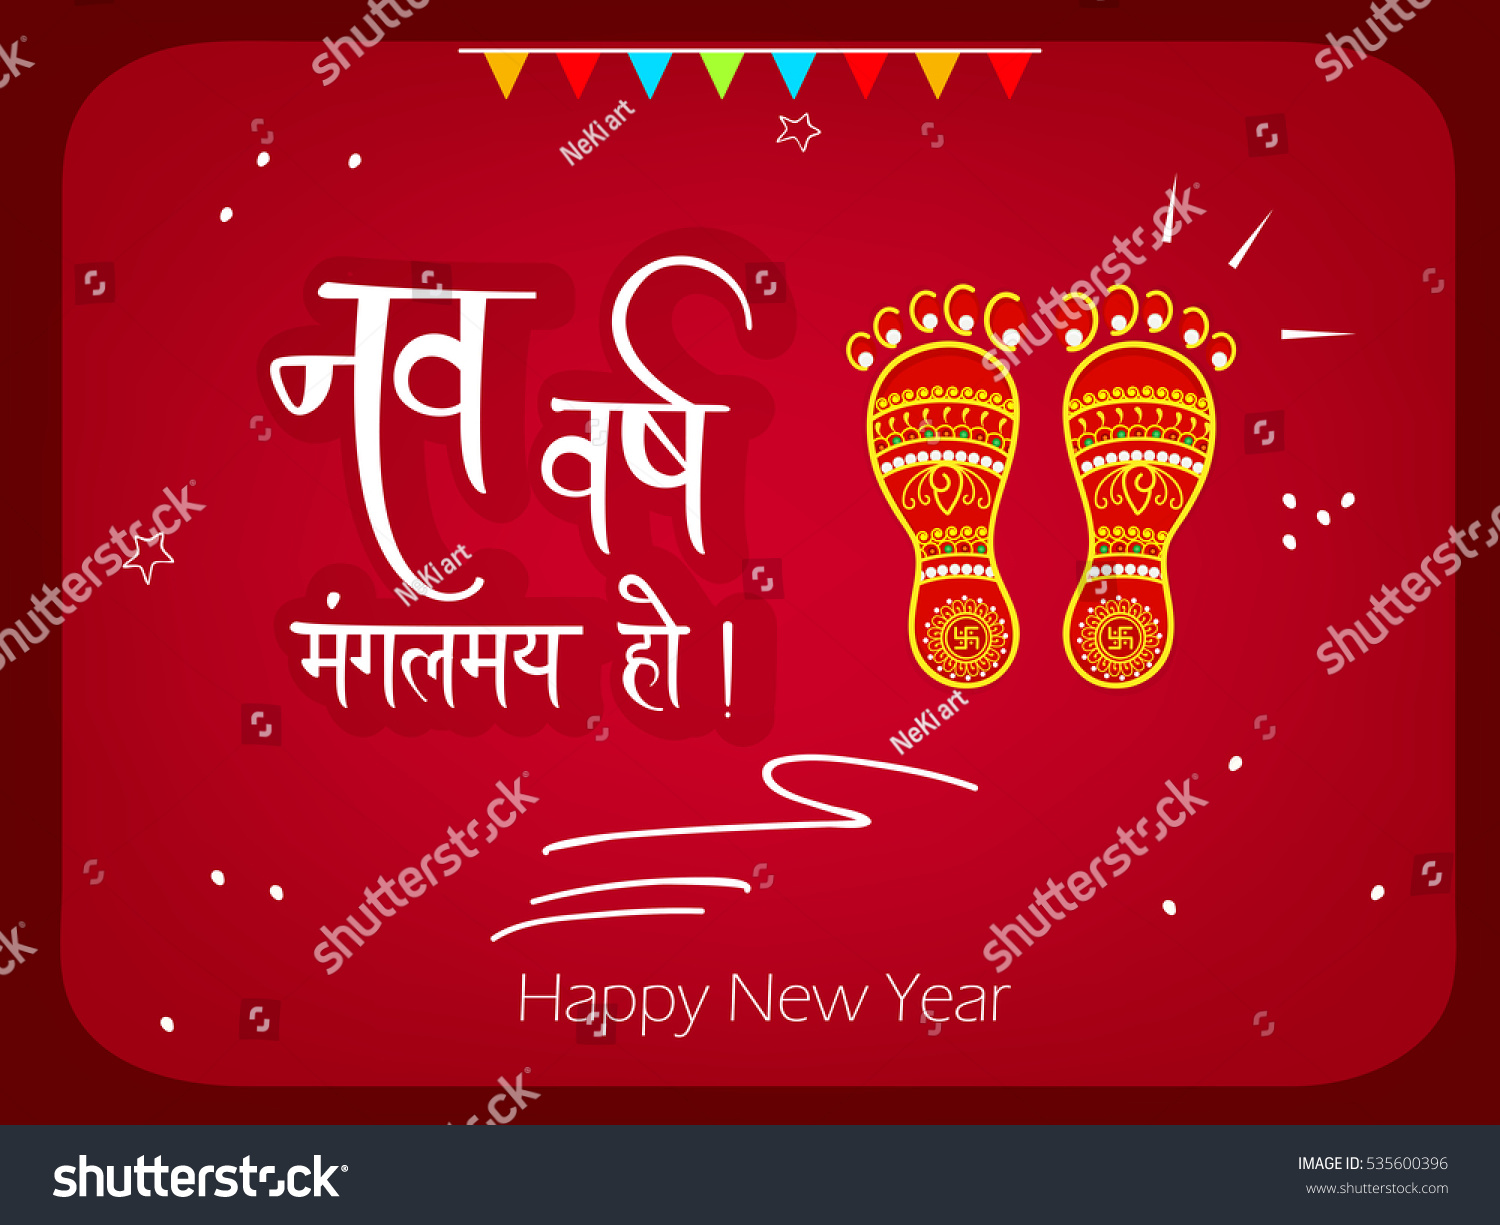 Vector illustration creative happy new year stock vector royalty vector illustration of creative happy new year 2017 greeting card with hindi religious text of nav m4hsunfo